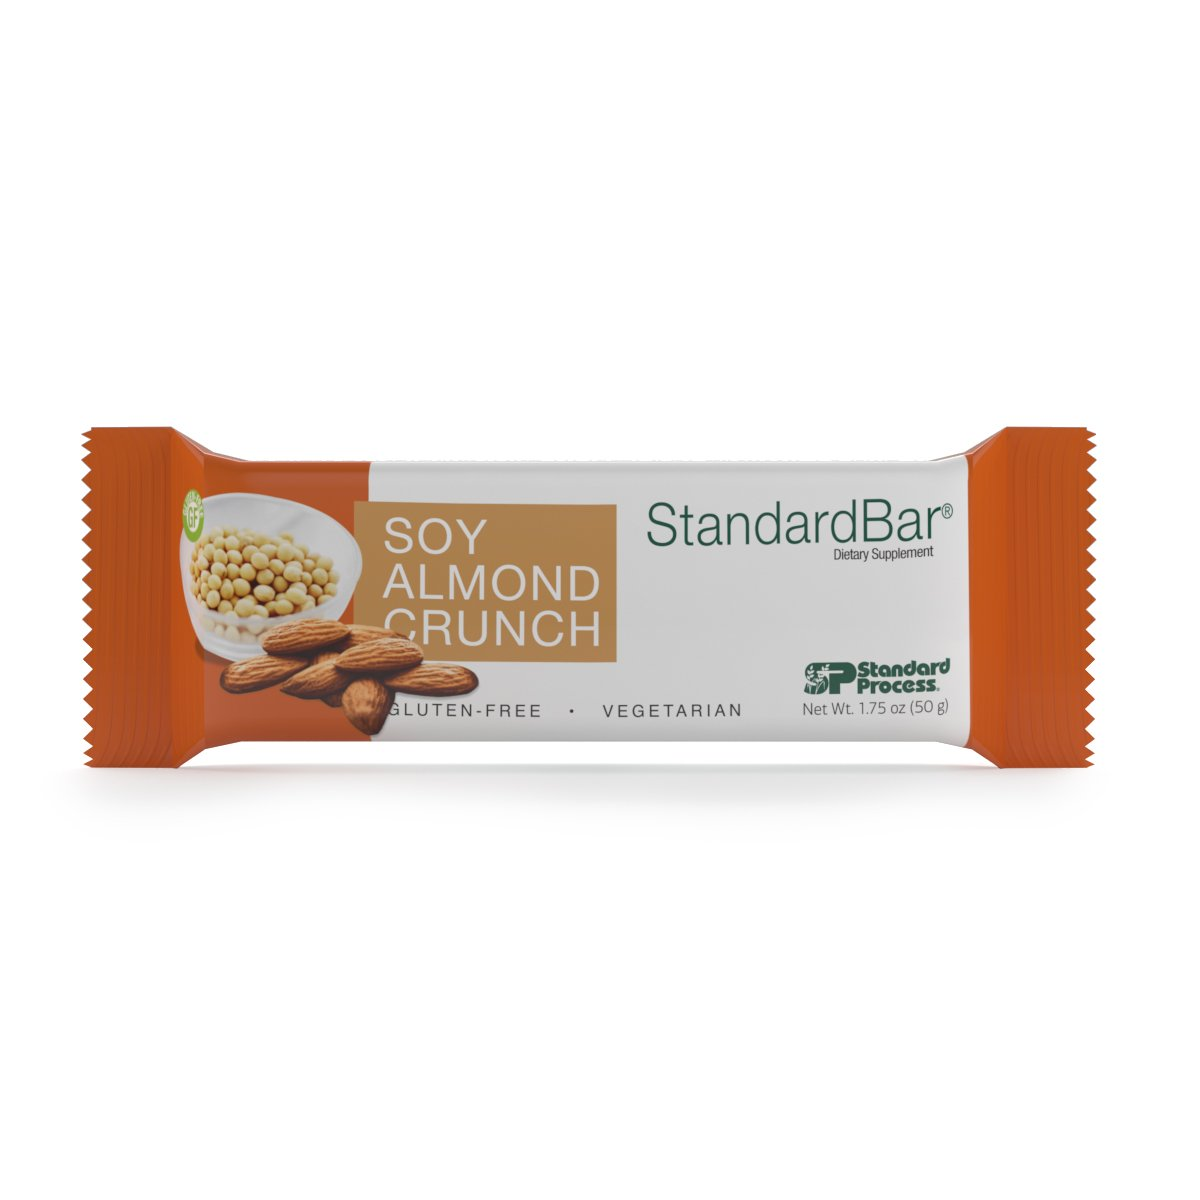 Standard Process - Soy Almond Crunch StandardBar - High-Protein Supplement, 15 g Protein Along with Calcium, Vitamin B6, Iron and Magnesium, Gluten Free and Vegetarian - 18 Bars (1.75 oz. Each)